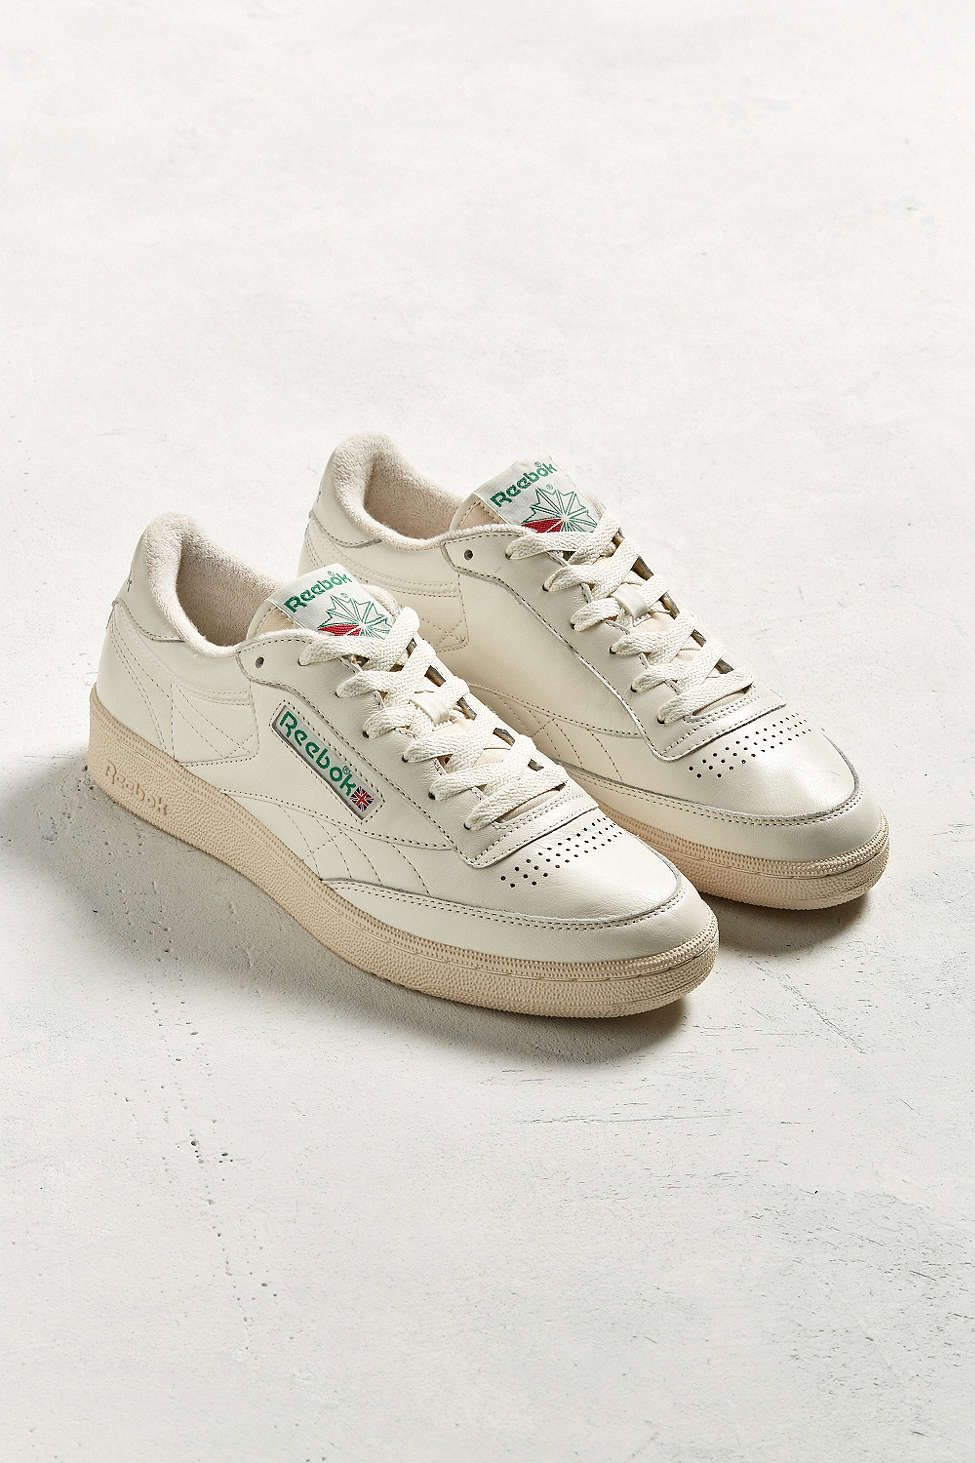 finest selection 4bf5f 47255 Reebok Club C 85 Vintage Sneaker - Urban Outfitters